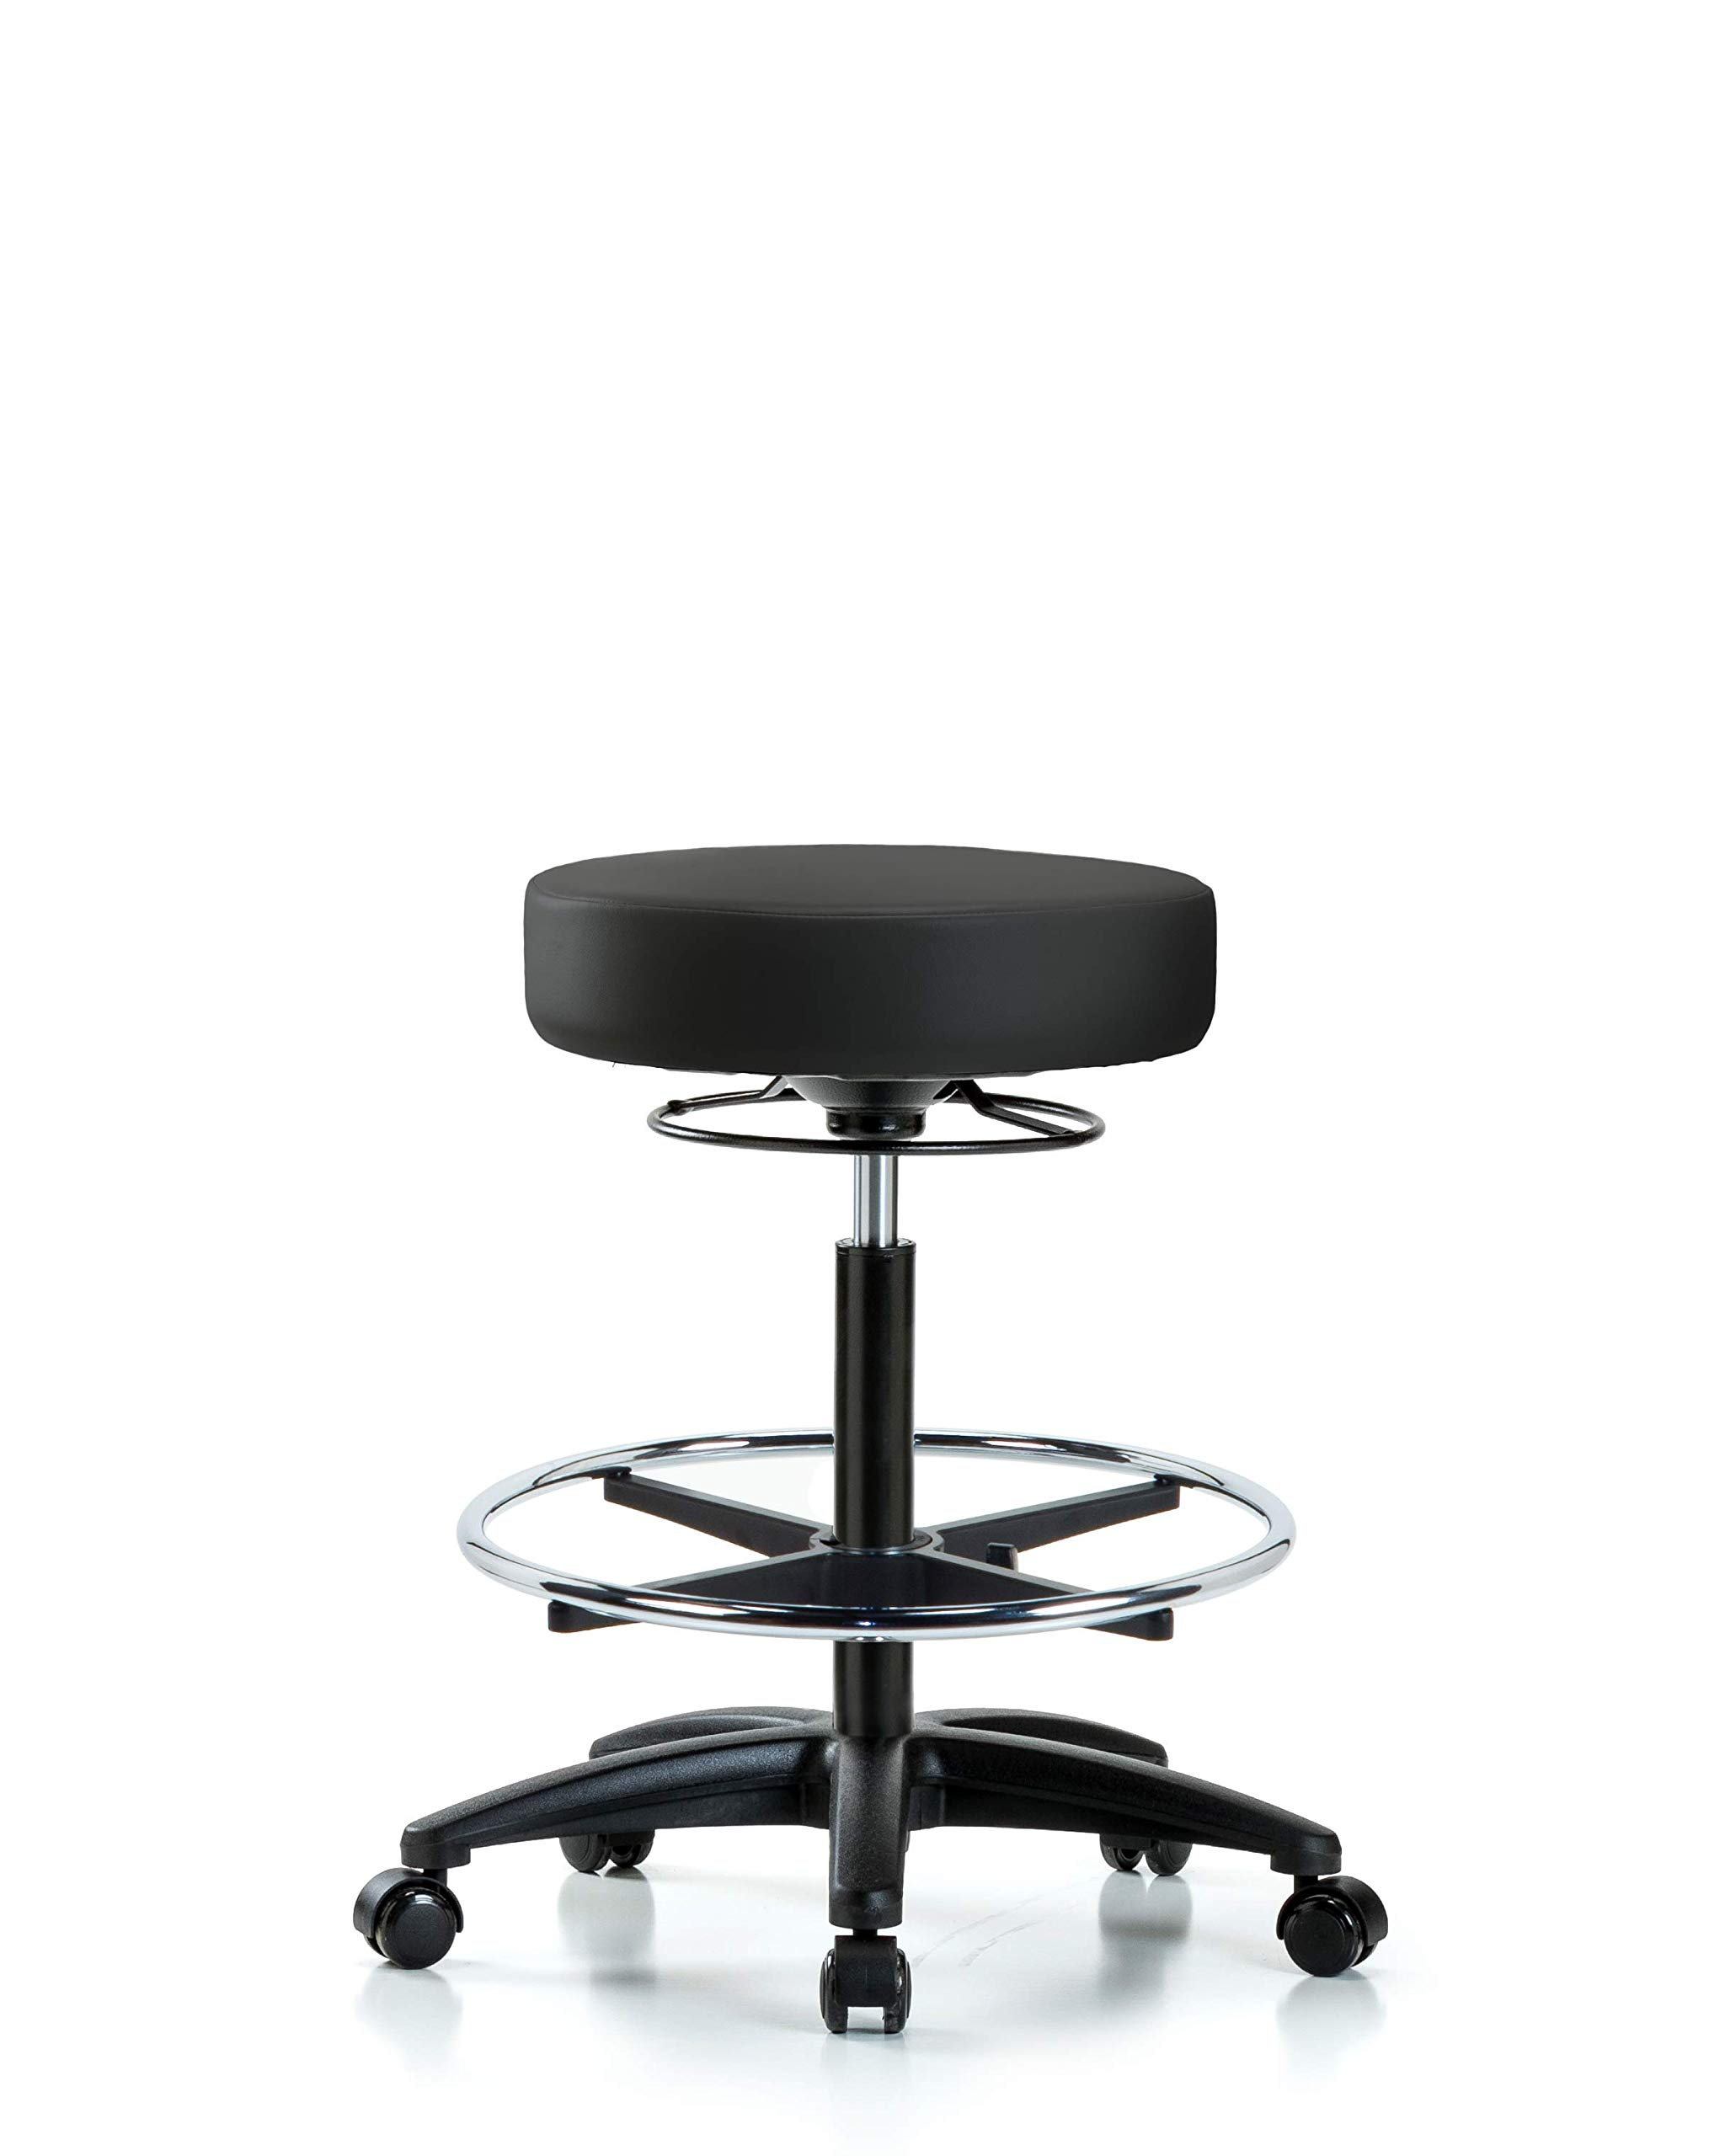 LabTech Seating LT45141 High Bench Stool, Vinyl, Nylon Base, Chrome Foot Ring, Casters, Black